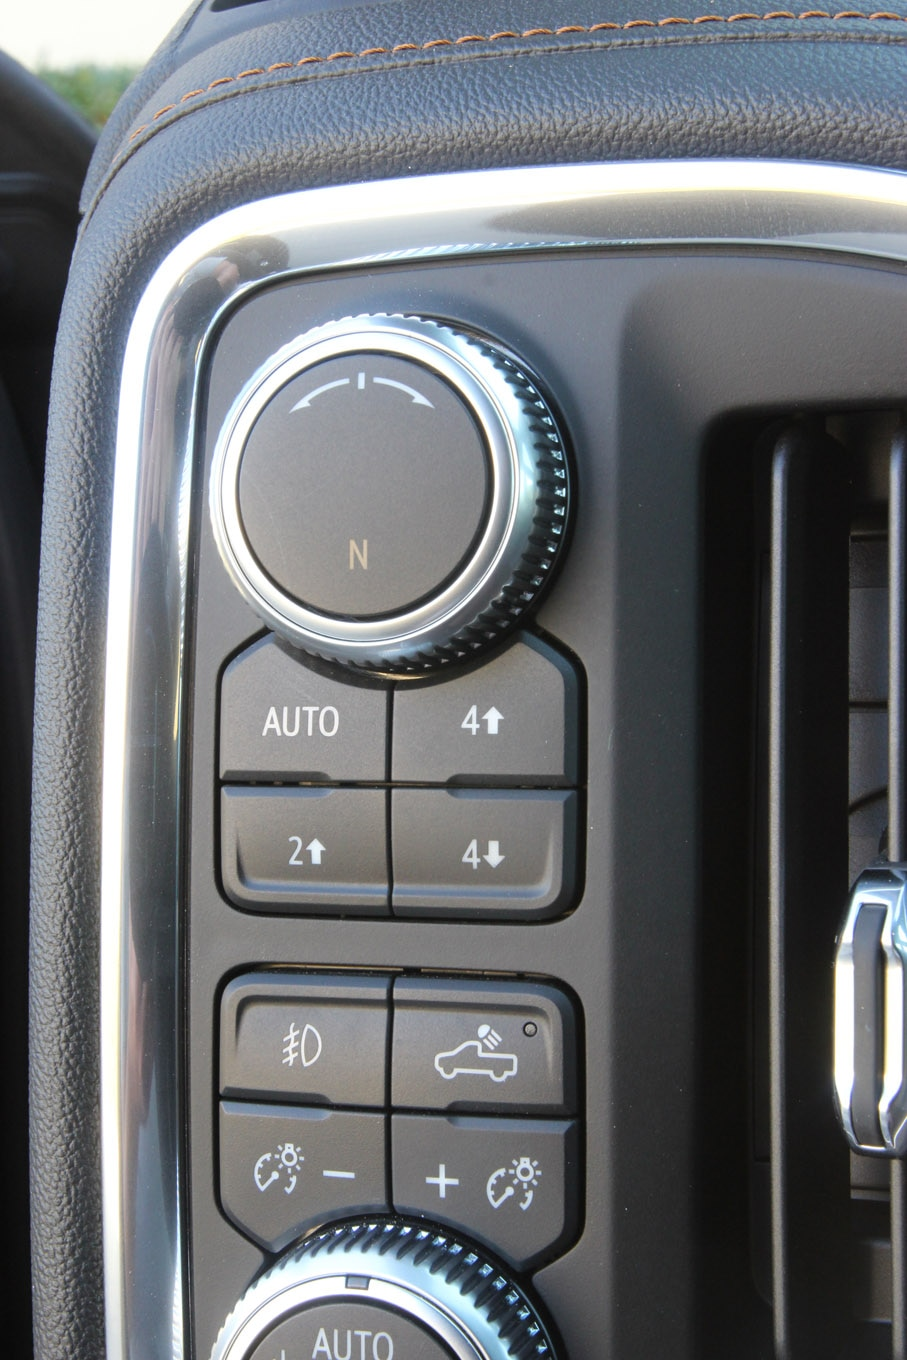 Both the GMC Sierra AT4 and the Chevy Silverado Trail Boss use this pushbutton system on the left side of the steering wheel. This isn't where we naturally look for the transfer case controls, but it does eliminate any possibility of shifting into low when you are trying to turn up the air conditioning.